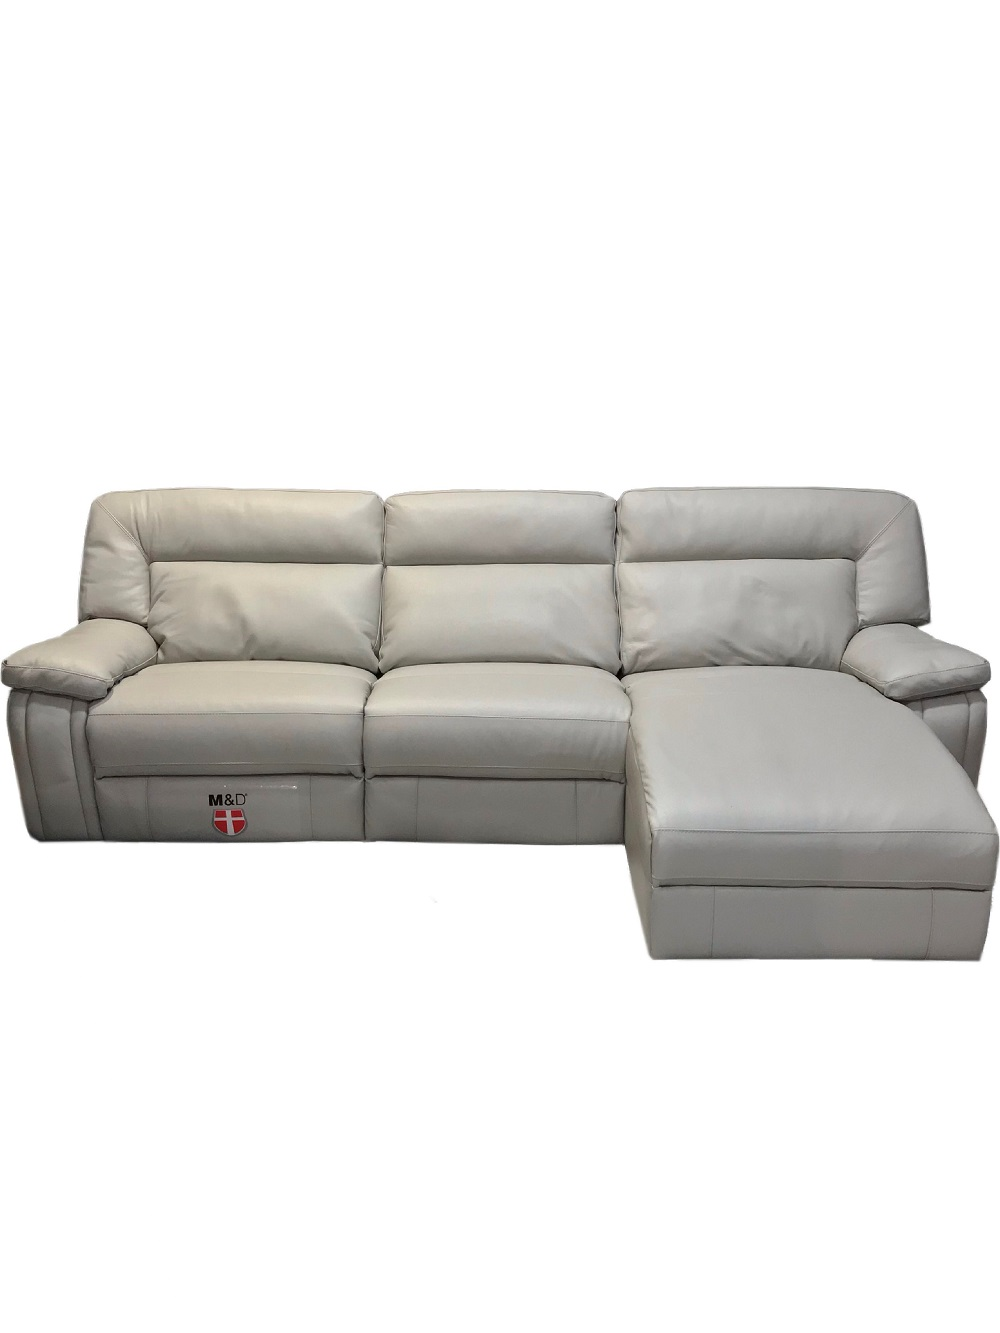 Ee71 Reclining 3 Seater Chaise Combo By Milano And Design